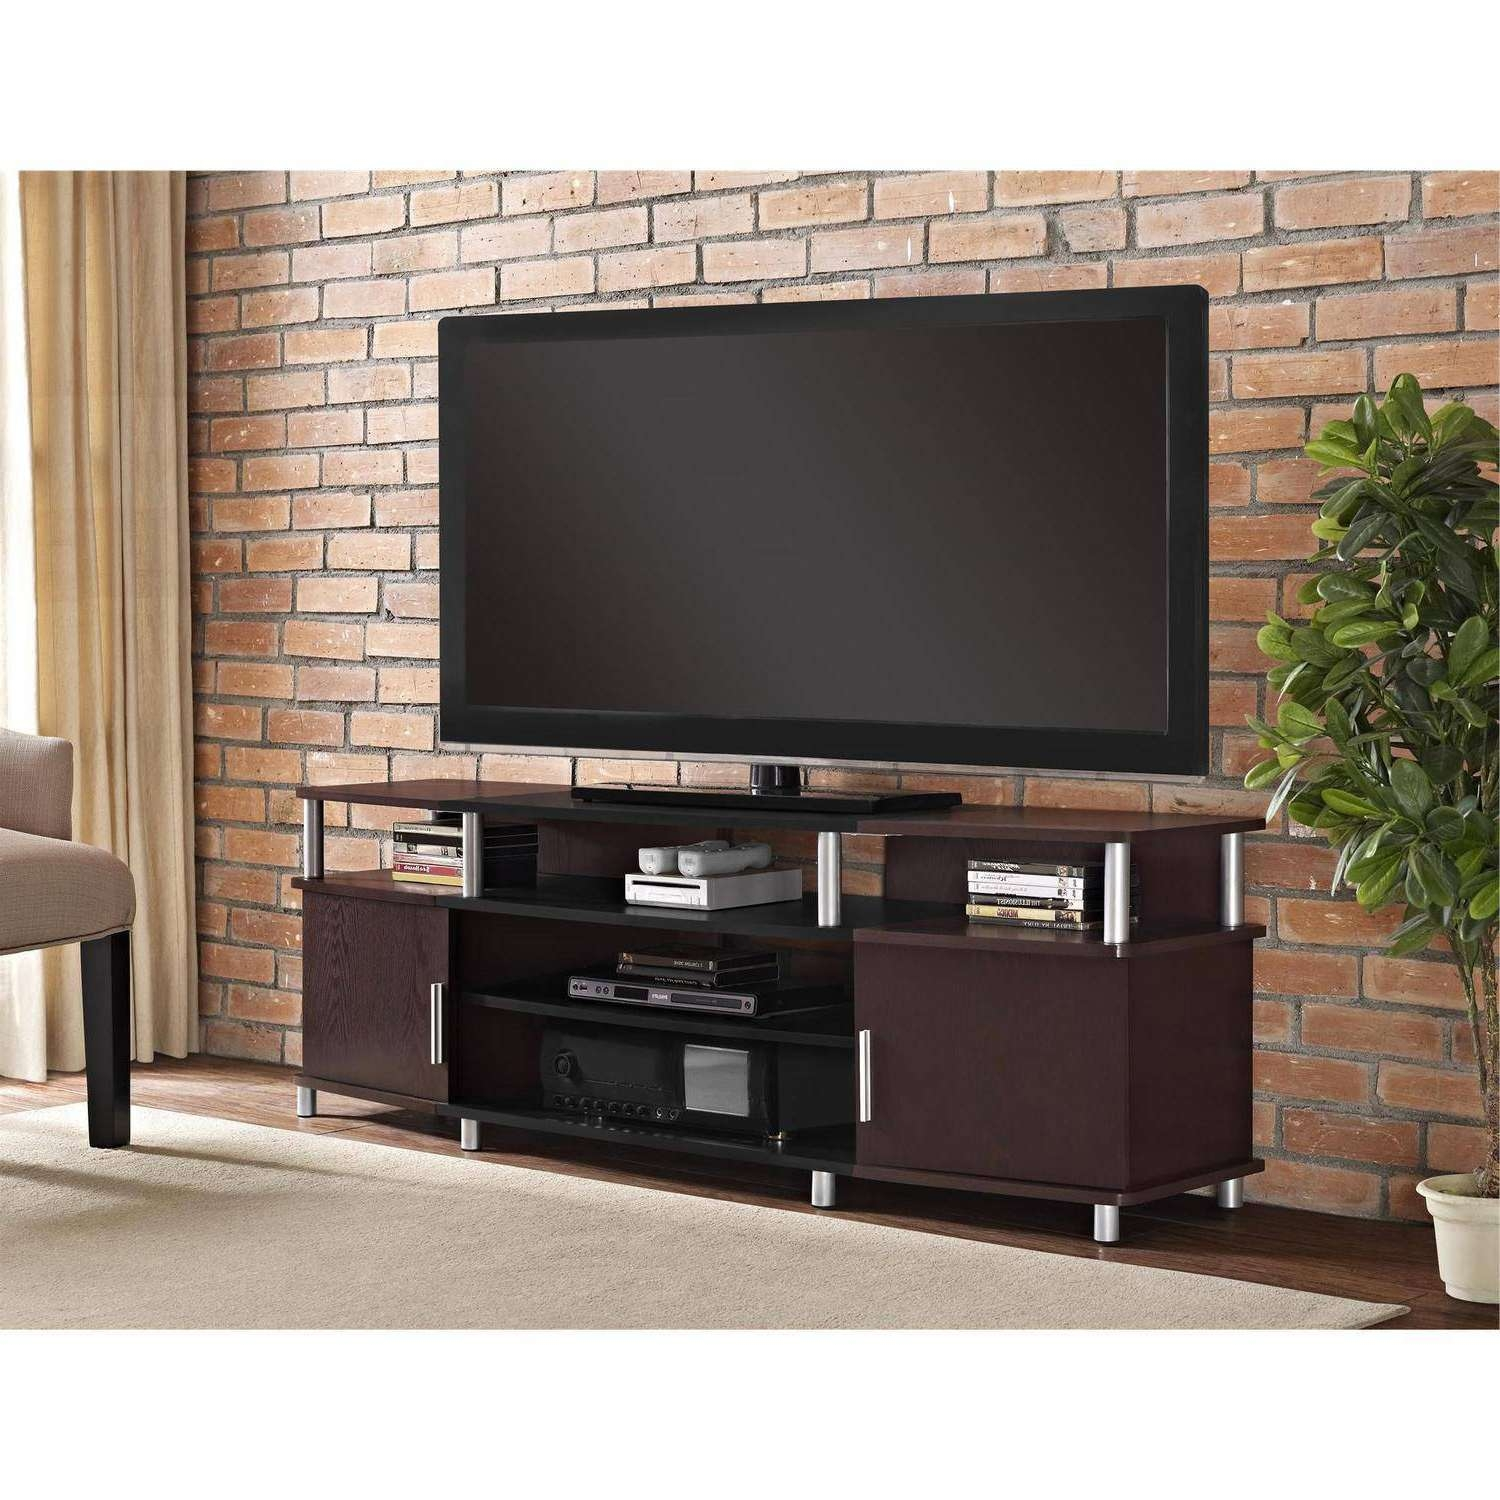 Tv Stands & Entertainment Centers – Walmart In Wide Screen Tv Stands (View 3 of 15)